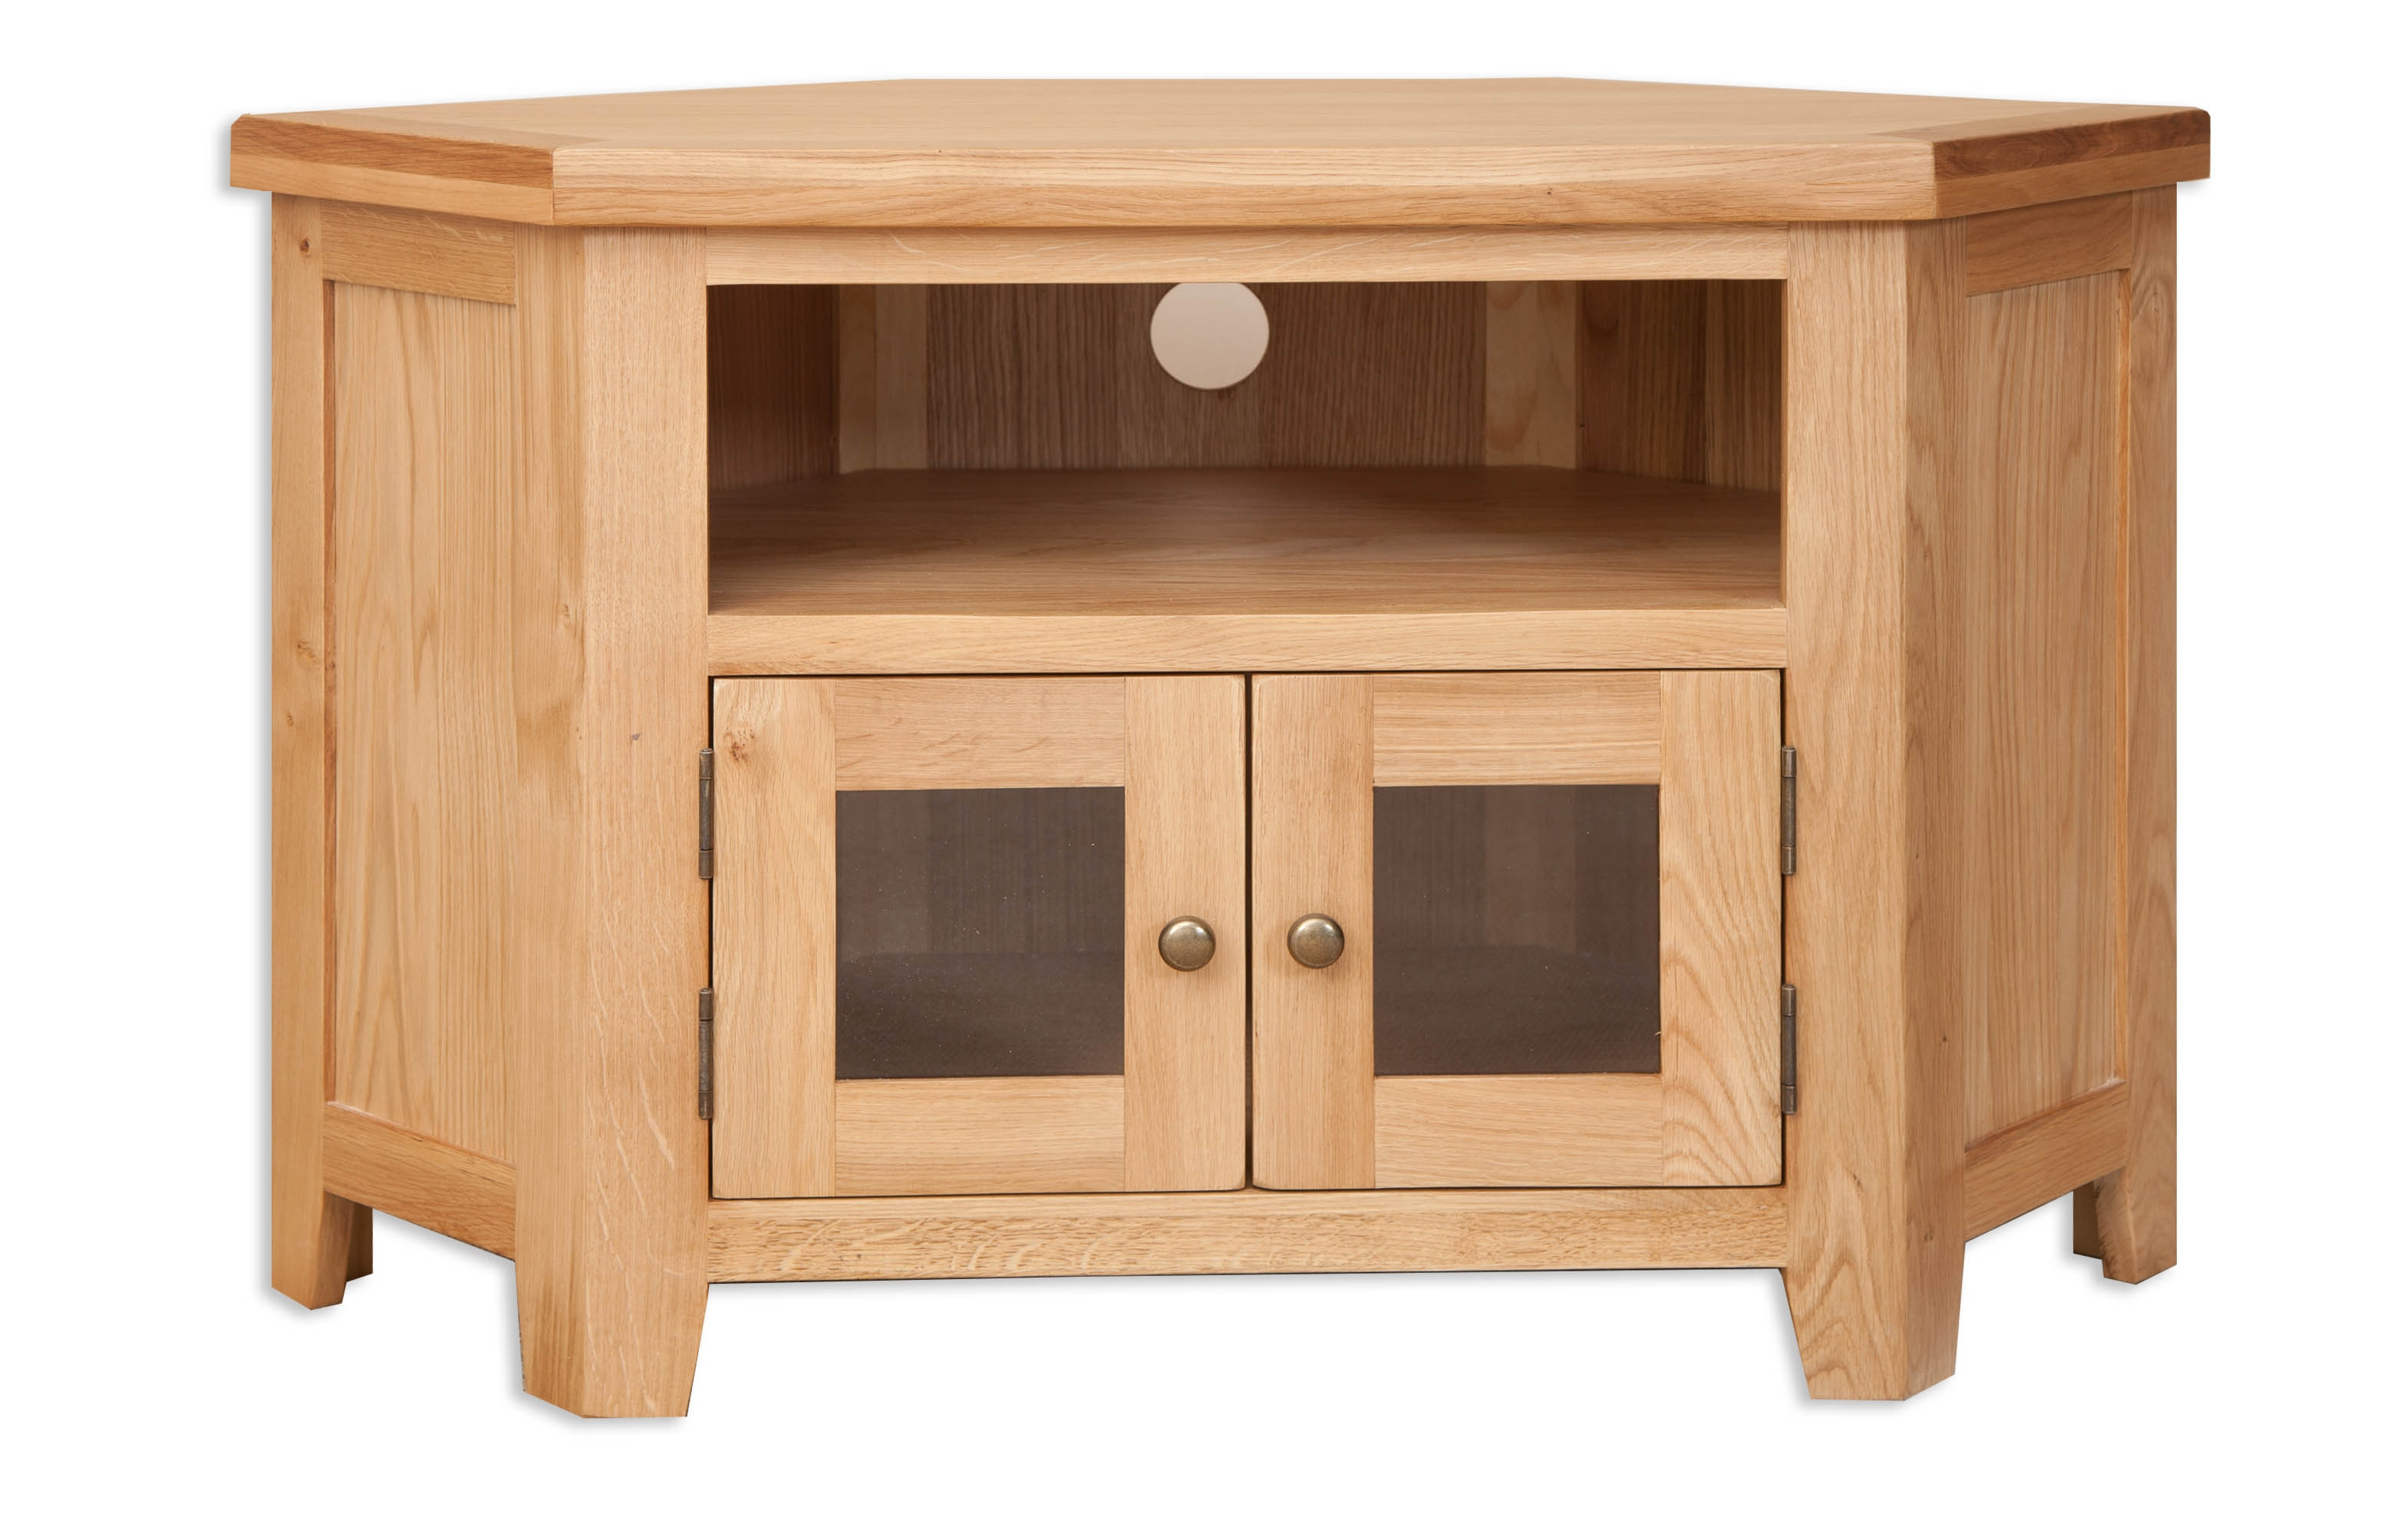 Perth Natural Oak Glazed TV Cabinet